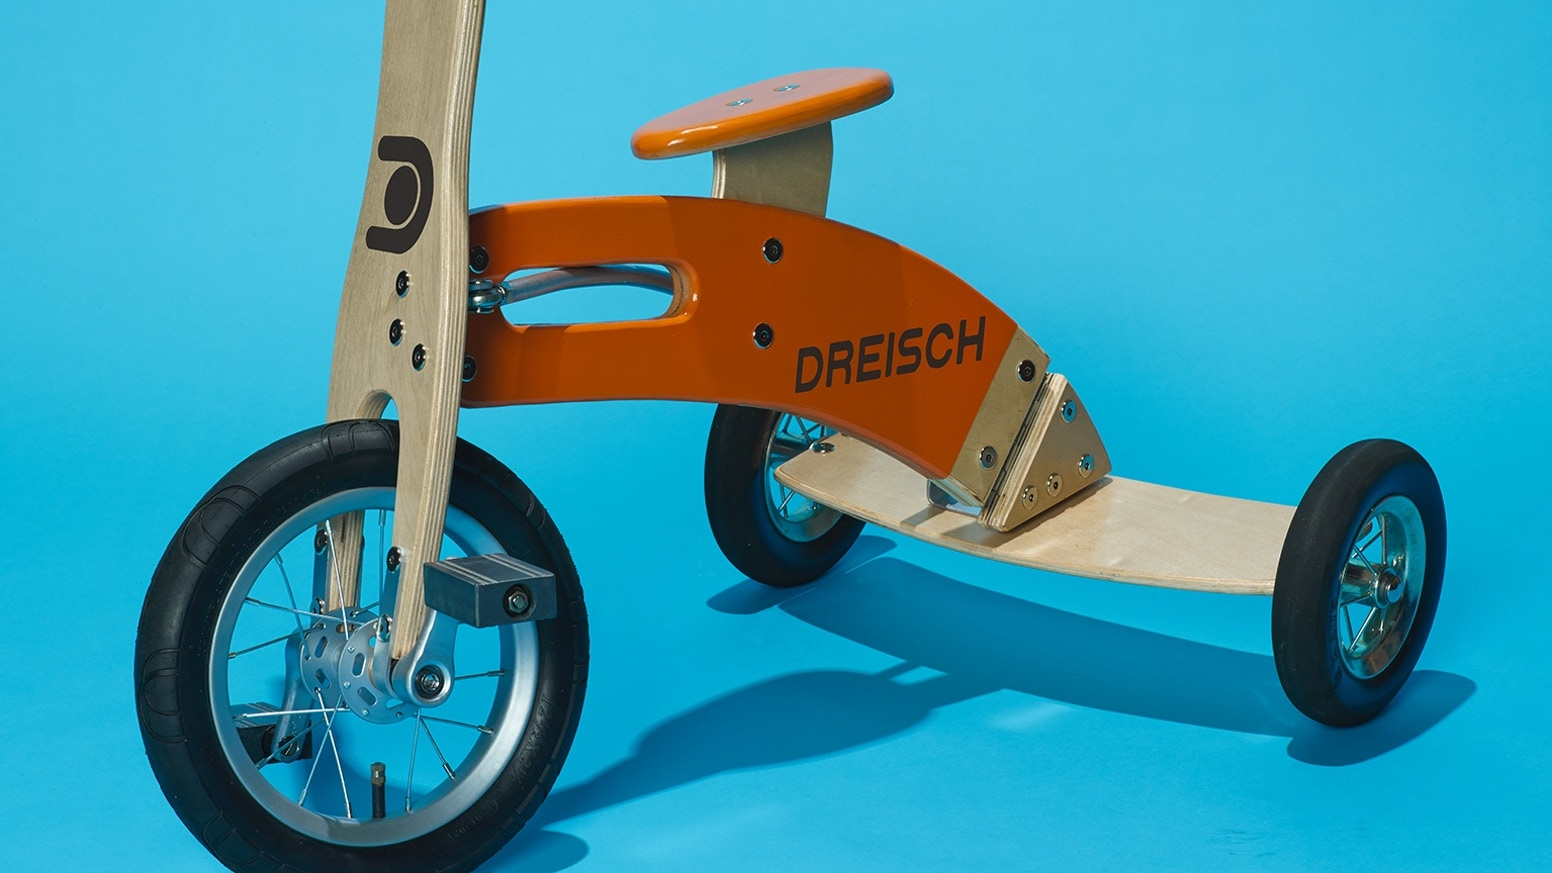 58888fc01fa Dreisch Leaning Tricycle: The Trike That Rides Like a Bike! by Rich ...